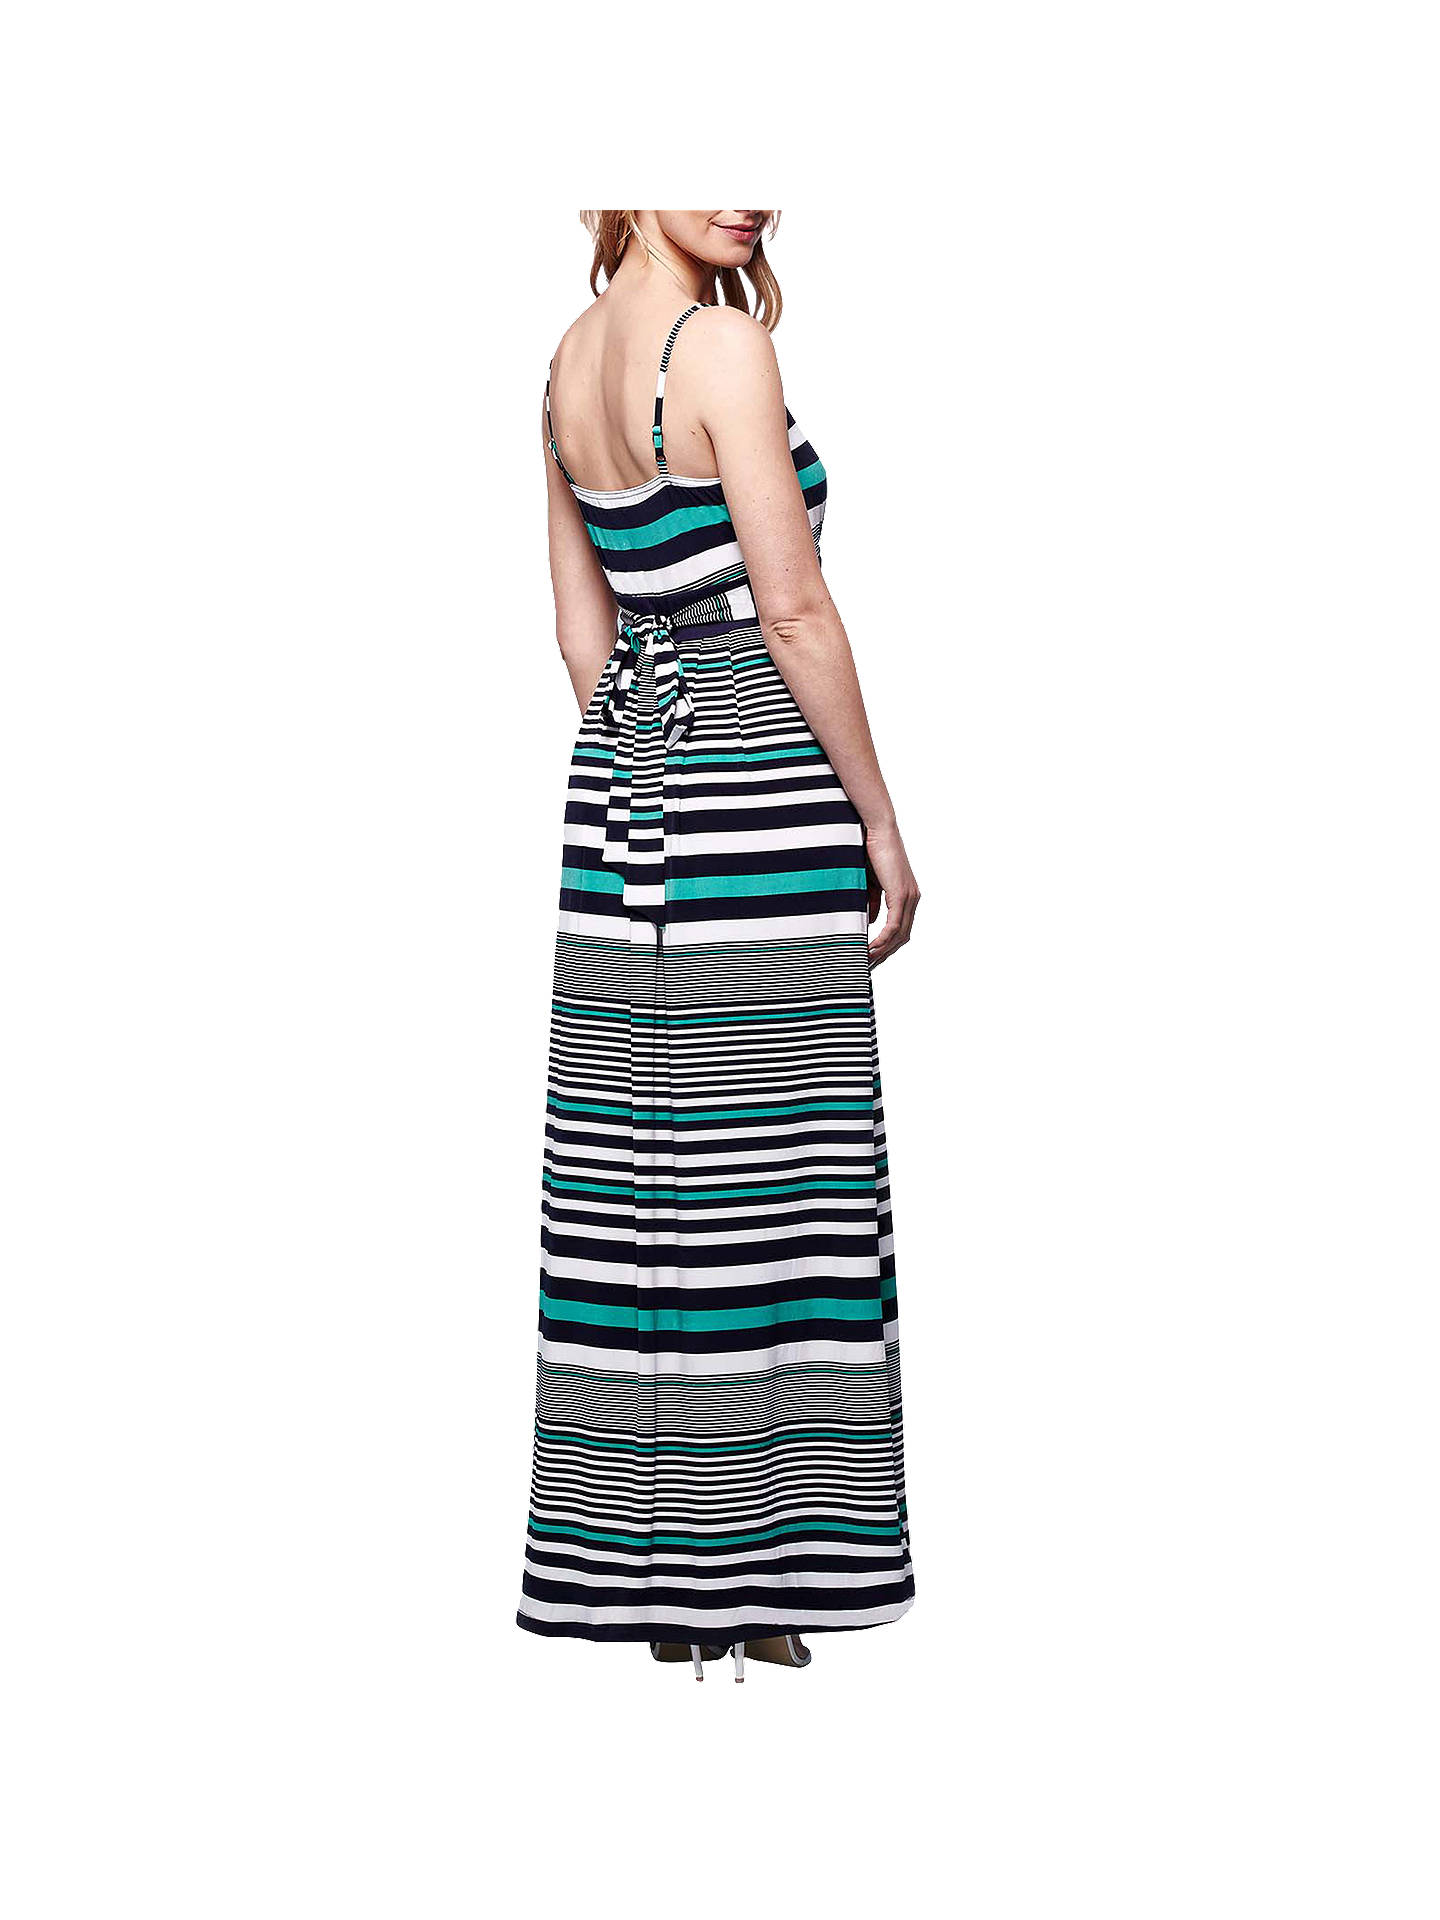 BuyYumi Horizontal Striped Maxi Dress, Multi, 8 Online at johnlewis.com